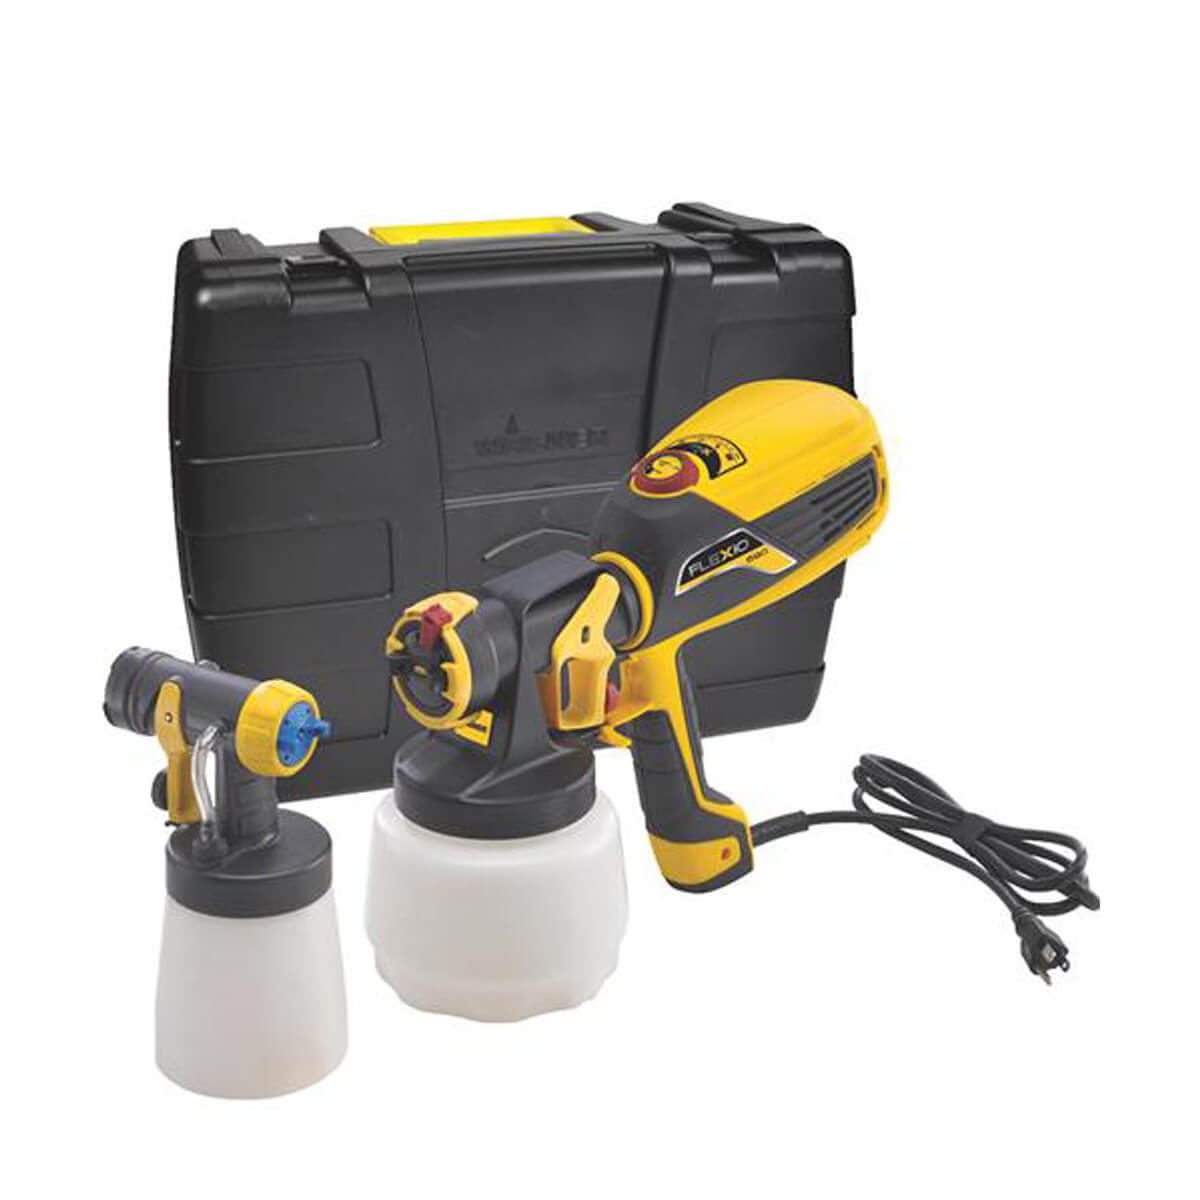 Wagner Spray Tech. 529010 FLEXiO 590 Paint Sprayer